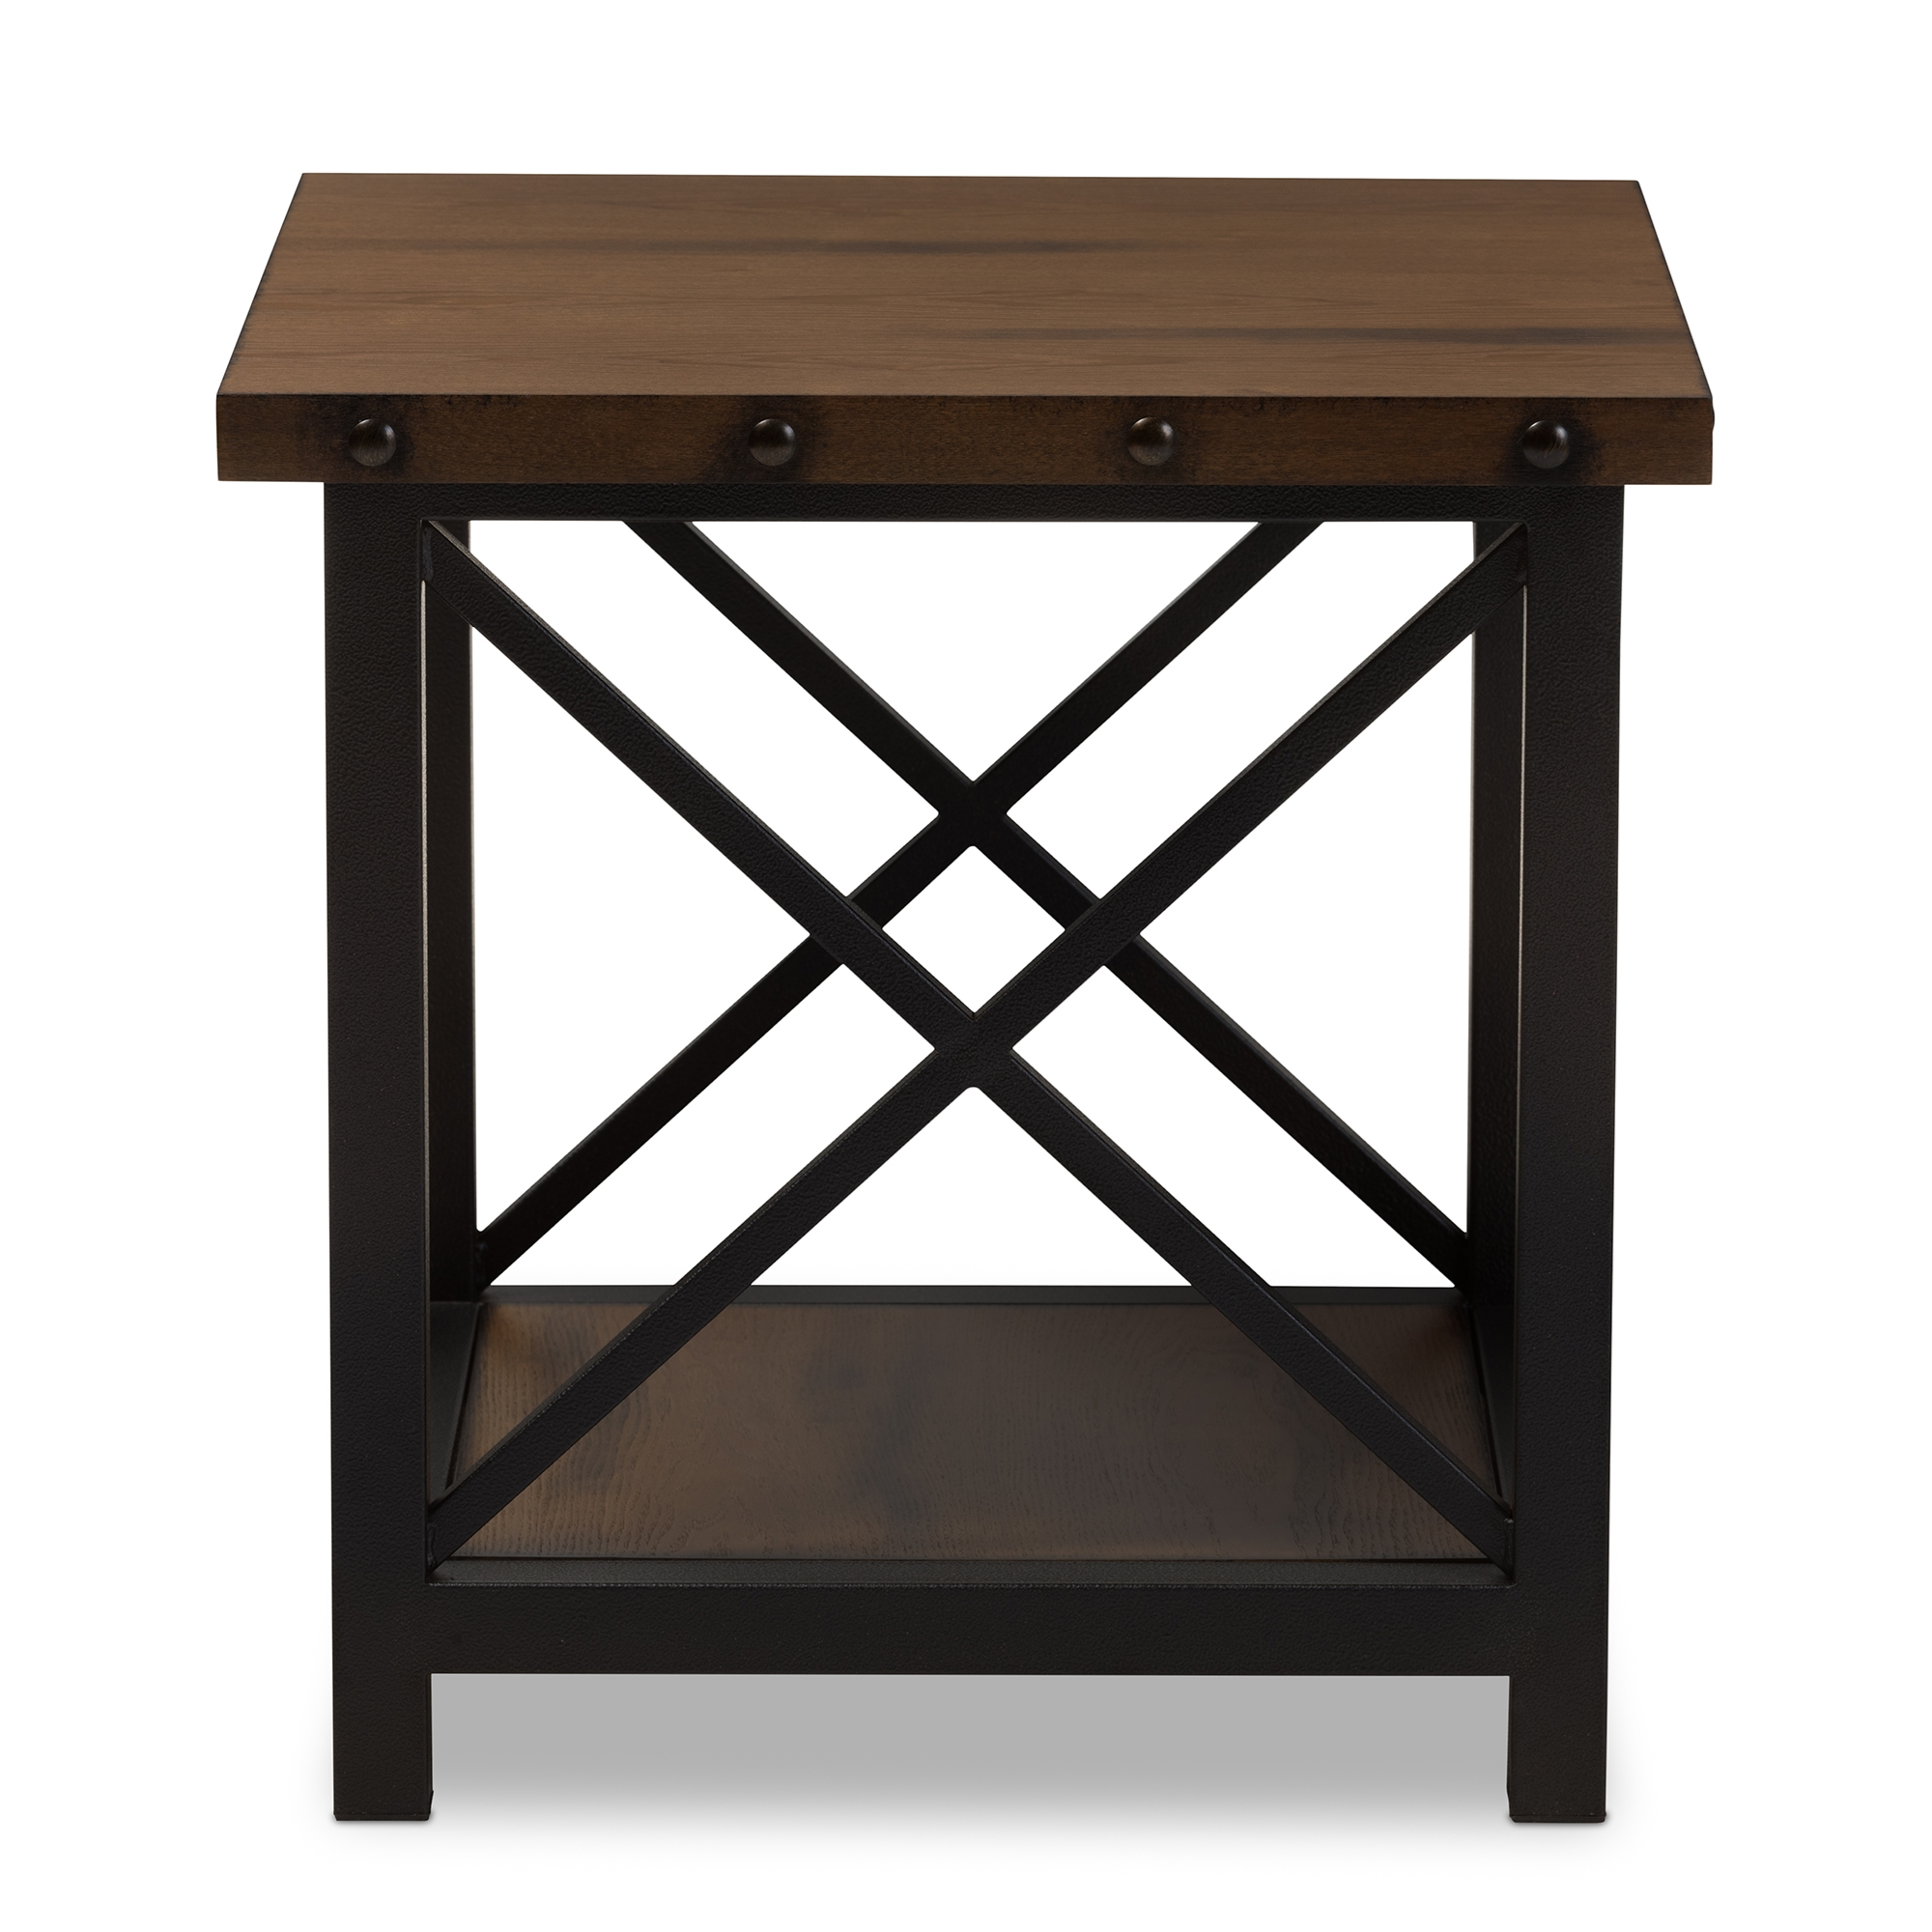 ... Baxton Studio Herzen Rustic Industrial Style Antique Black Textured  Finished Metal Distressed Wood Occasional End Table ...